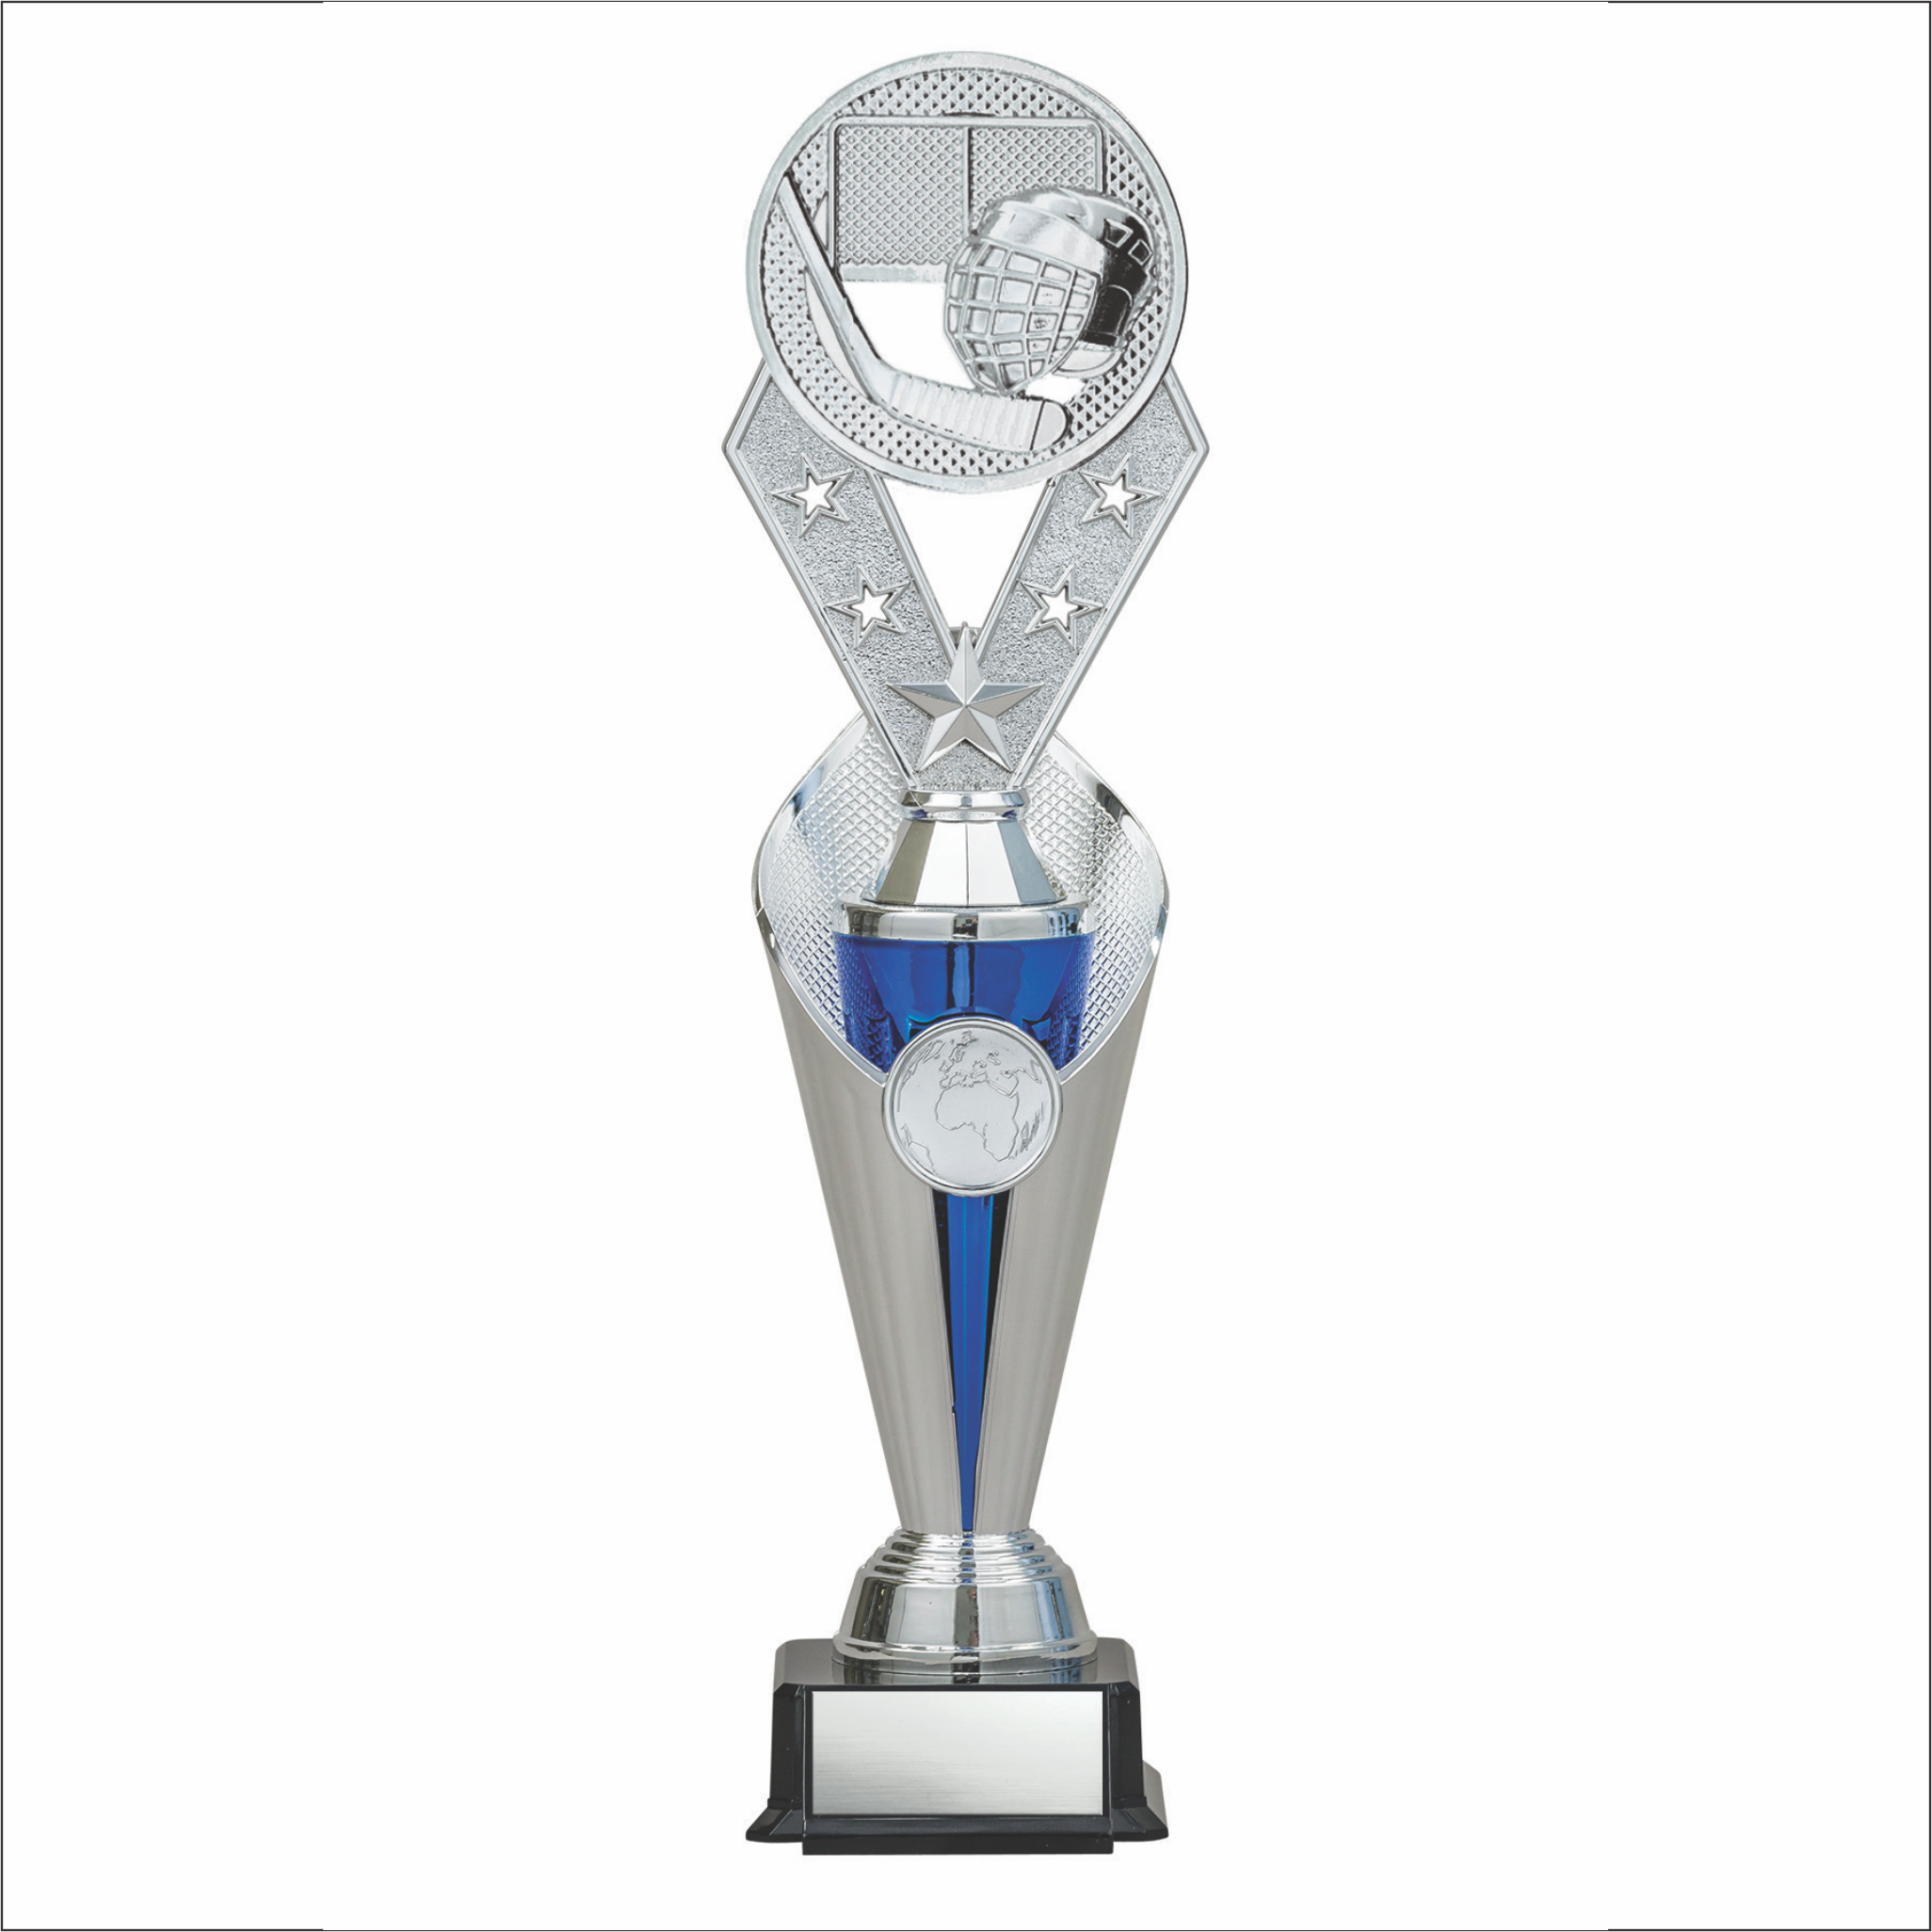 Hockey trophy - Alpha series - Trident style